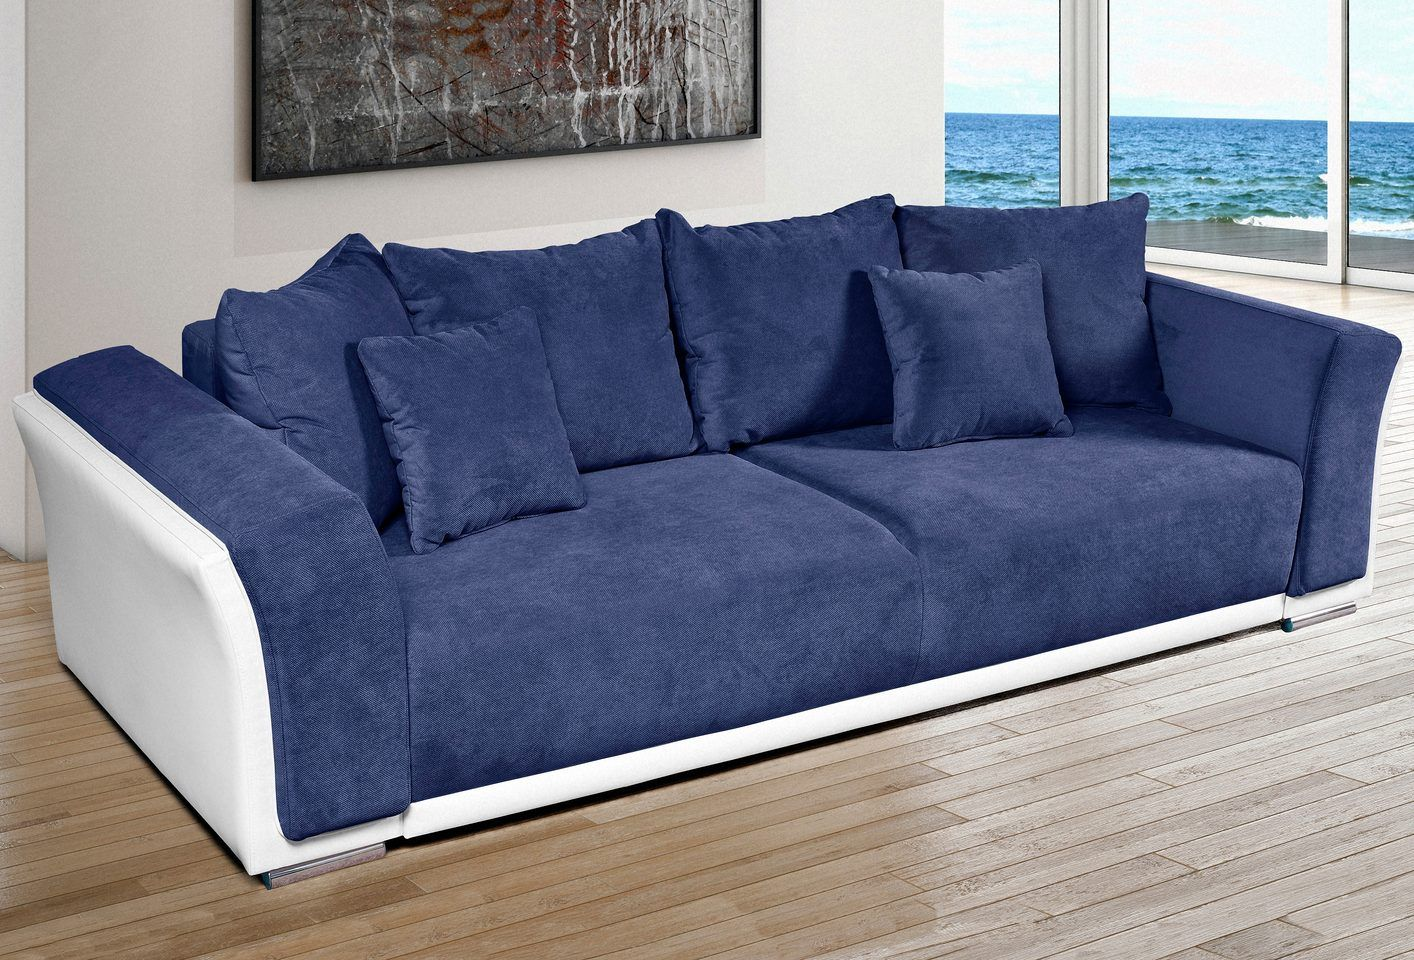 Cnouch Ecksofa Inosign Schlafsofa In 2019 Haus Is Home Couch Furniture Home